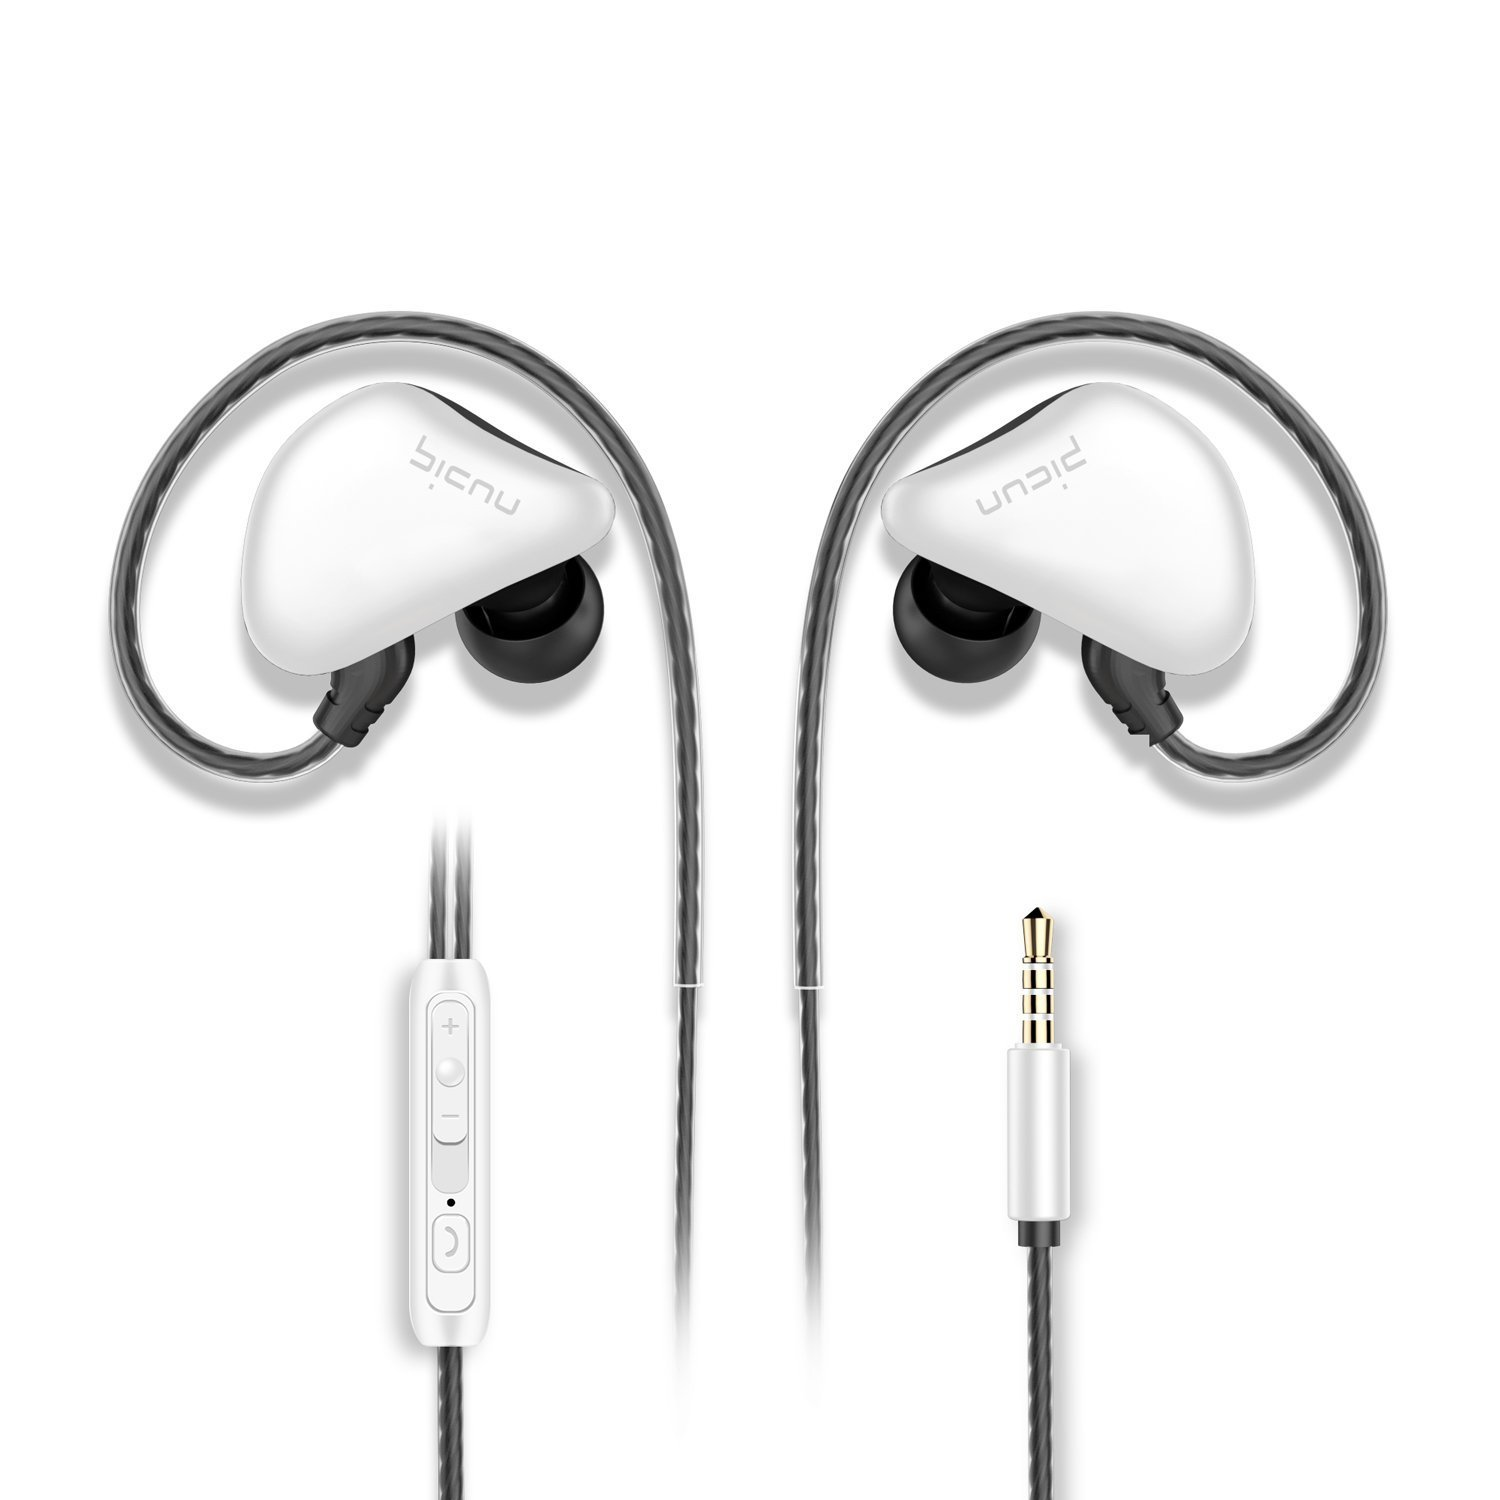 Picun S6 Sports Earbuds In Ear Headphones with Microphone&Volume Control for Running Gym Workout Jogging,Earphones for iPhone iPad iPod Tablets Android Smartphones Laptop Tablets MP3/4(Black White)